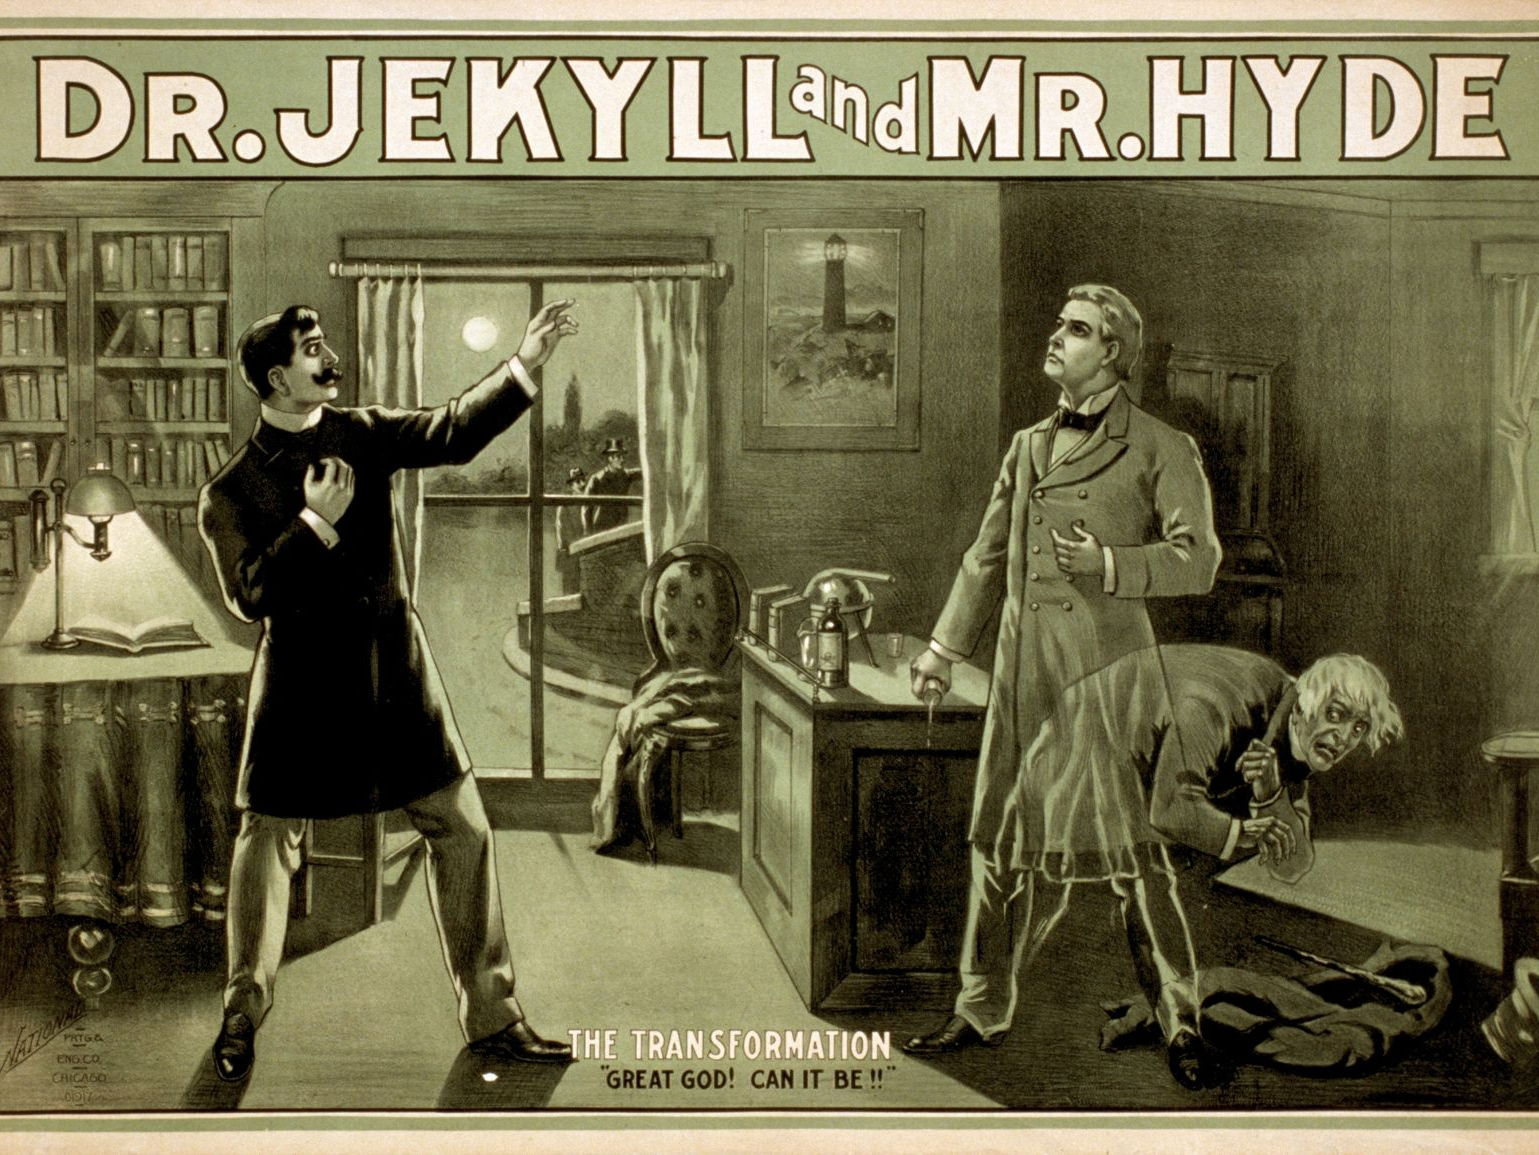 Dr Jekyll and Mr Hyde 9-1 Scheme of work